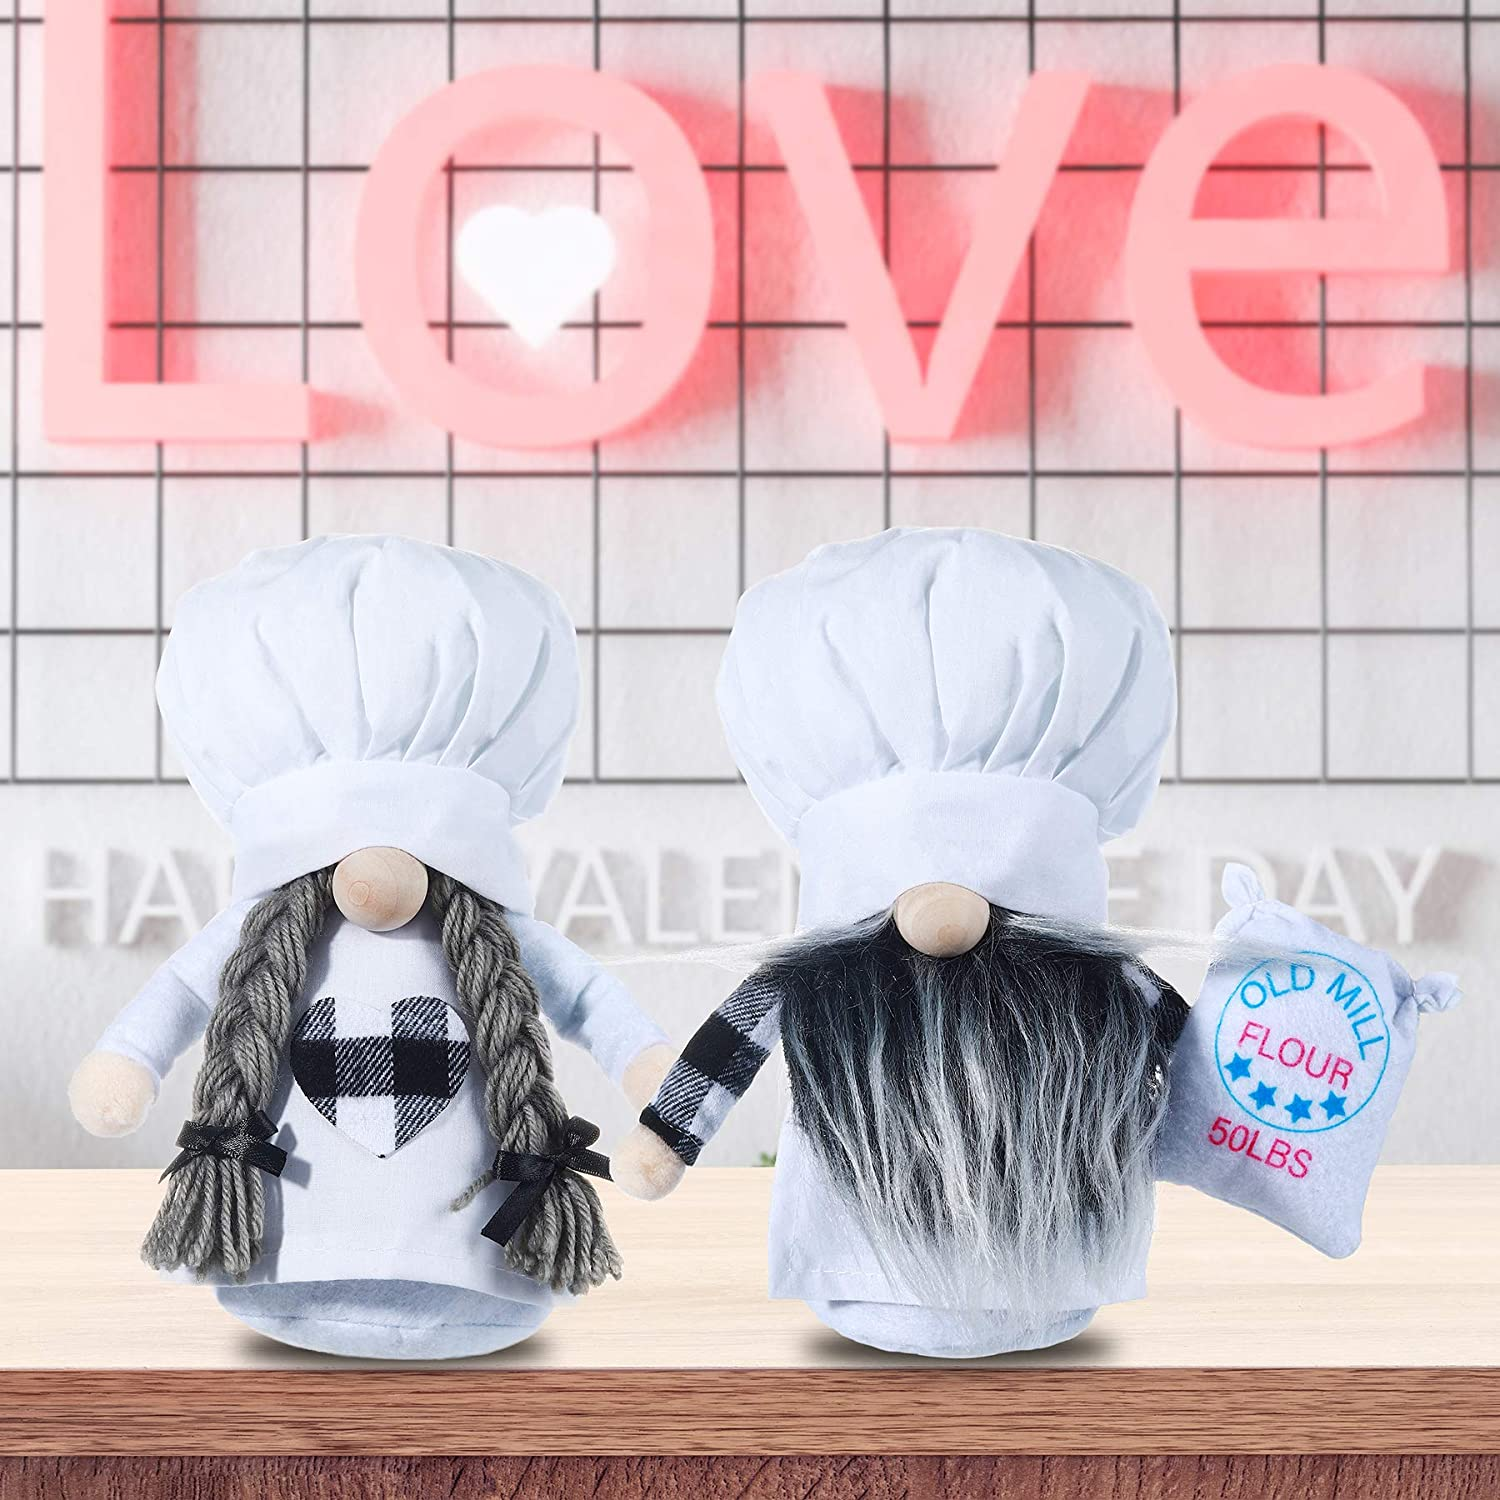 Oubomu 2PCS Cute Kitchen Chef Love Sweet Gnome, Scandinavian Cooking Tomte Elf for Home Table Kitchen Shelf Display Decorations, Couple Plush Gnomes for Valentine's Day Wedding Gift